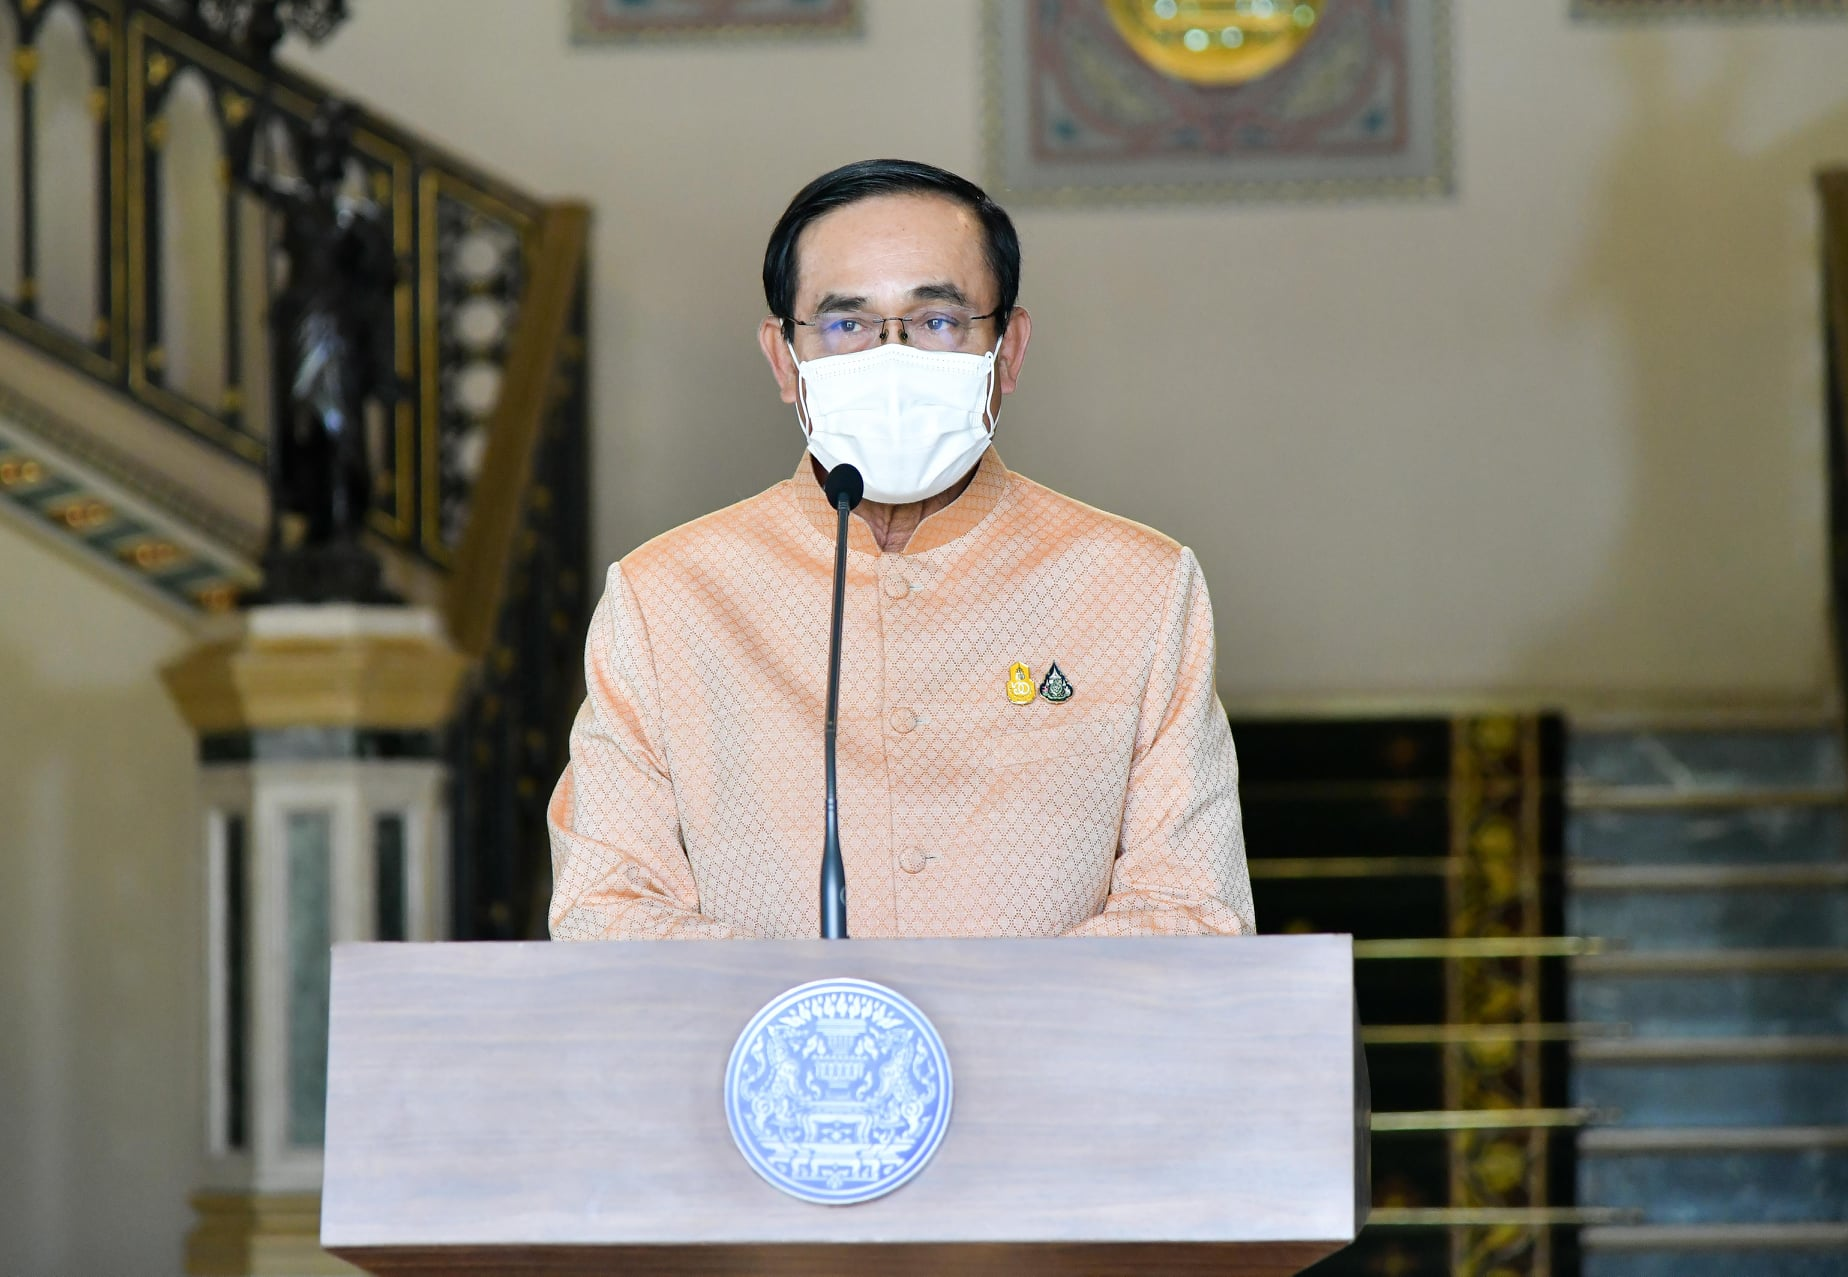 Prayut hopes COVID situation will ease 'in 4-6 weeks'